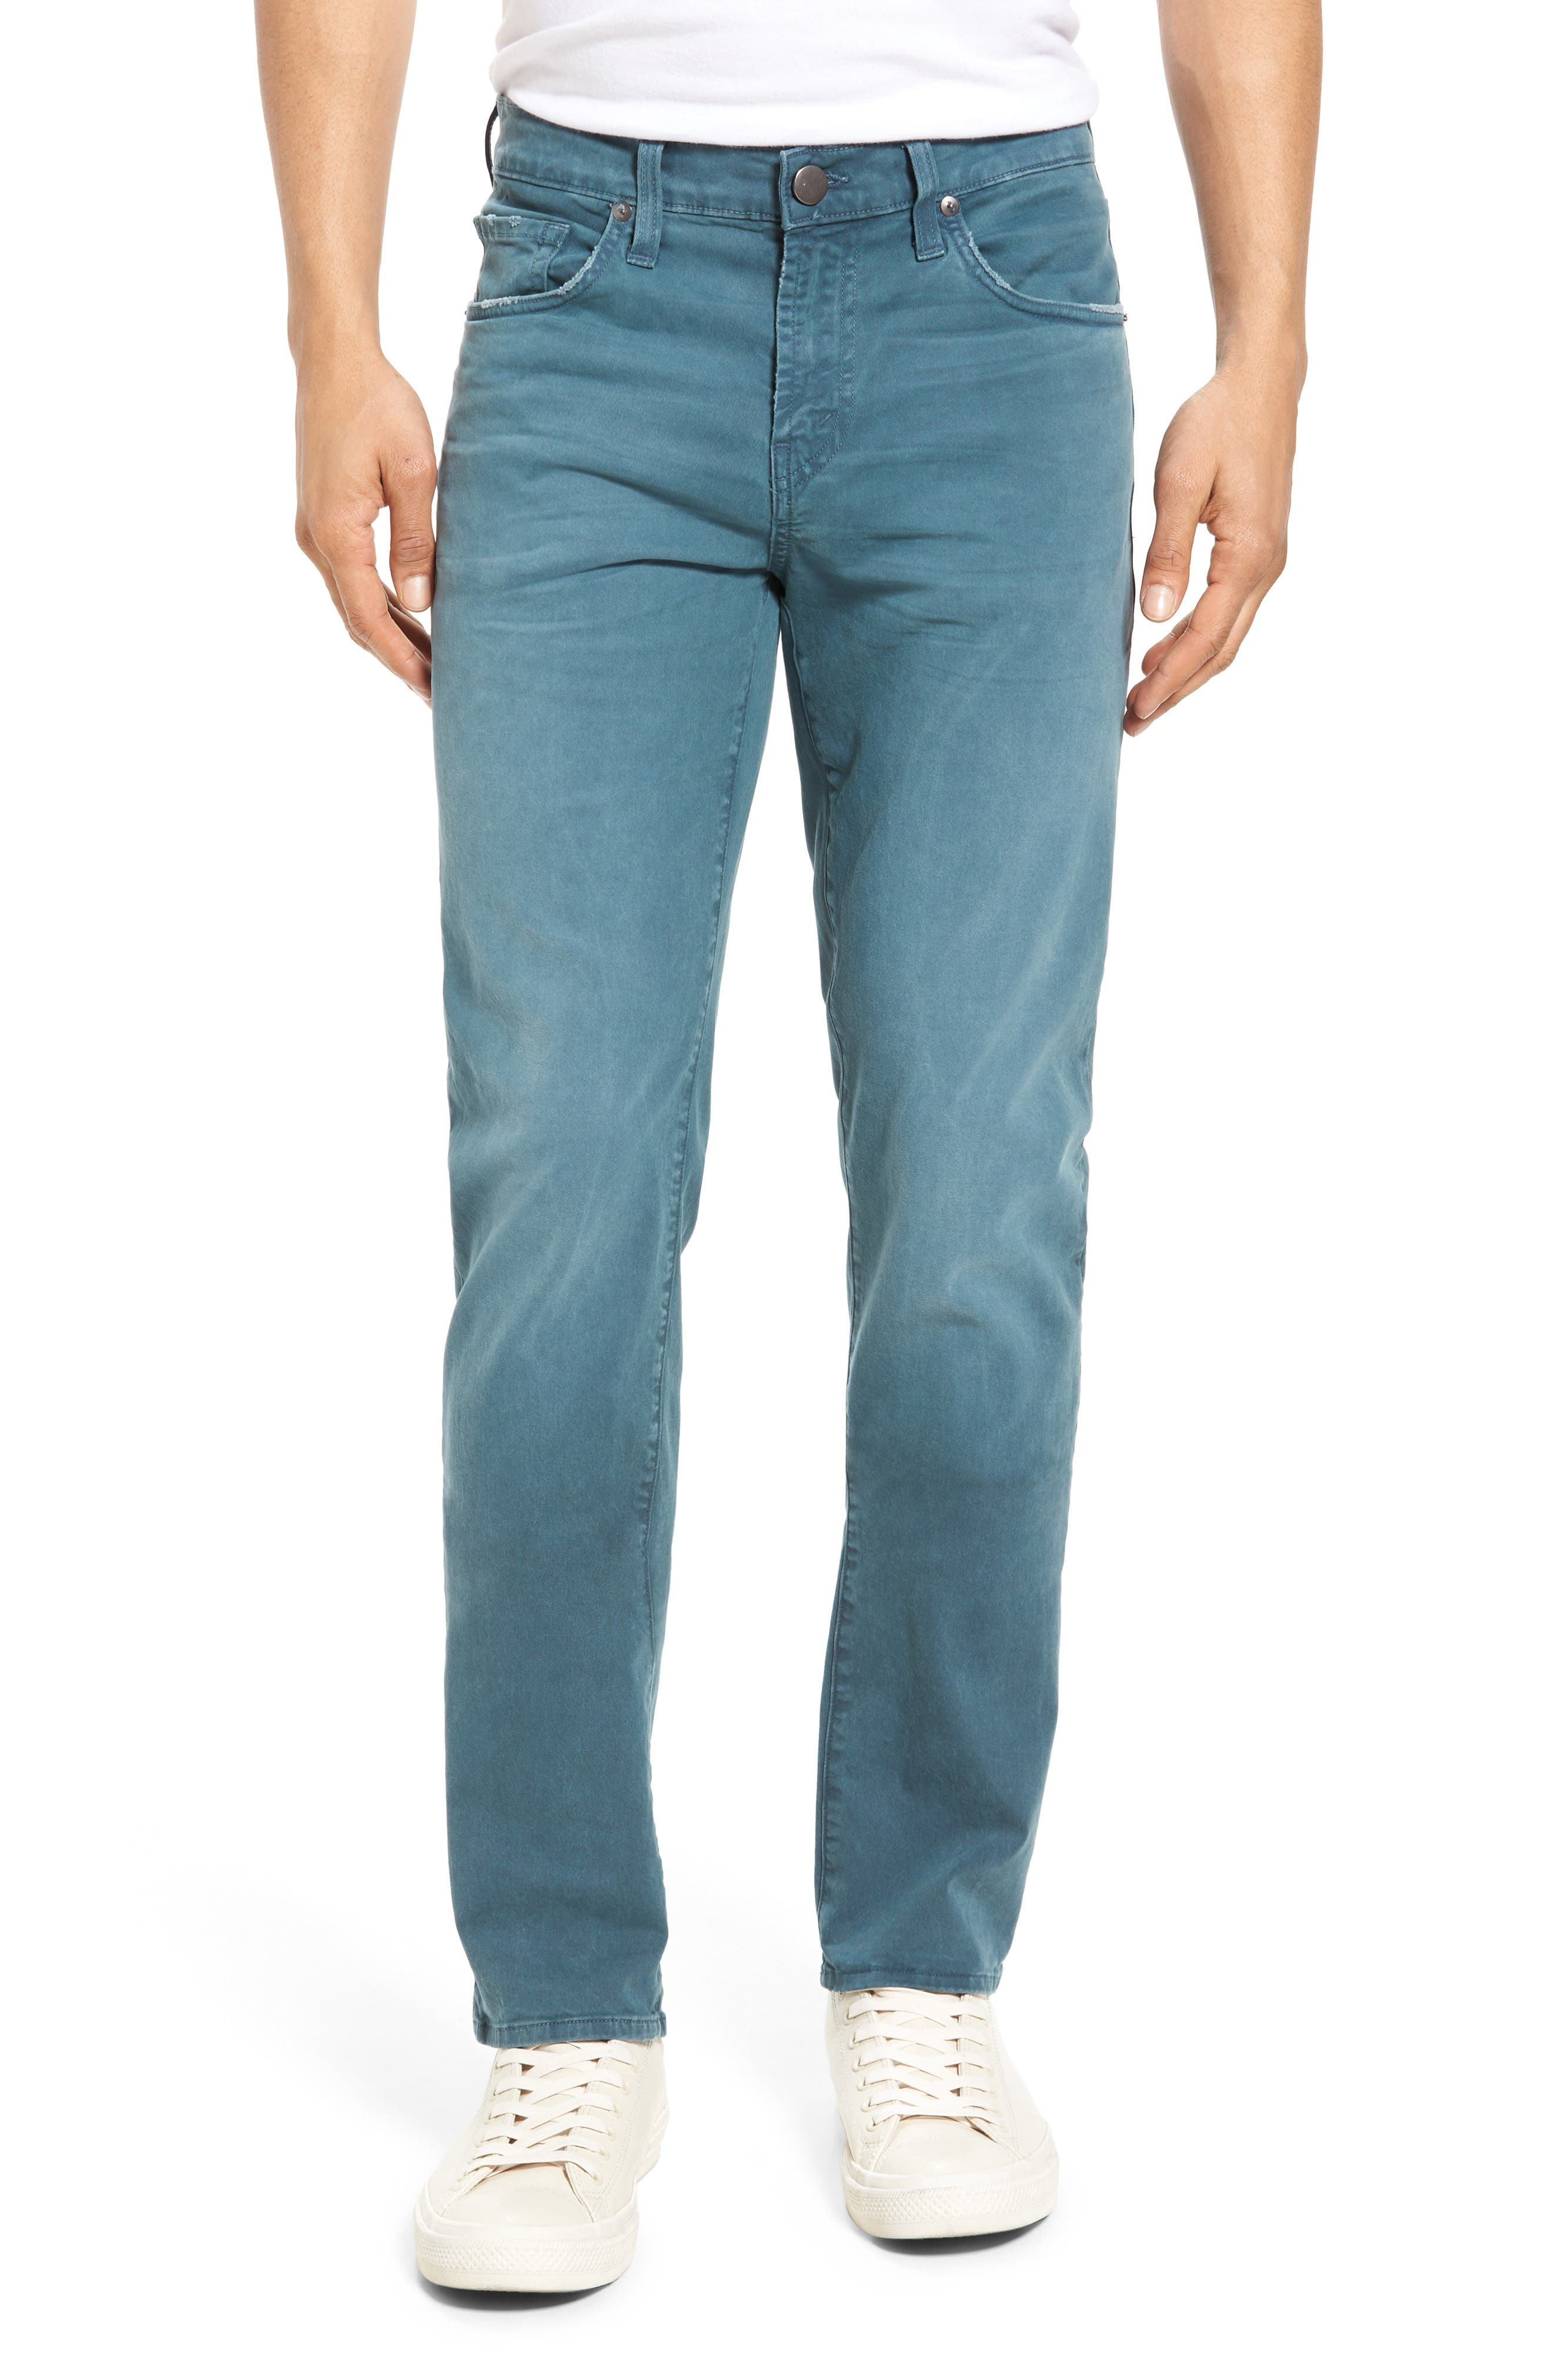 Tyler Slim Fit Jeans,                         Main,                         color, Thrashed Space